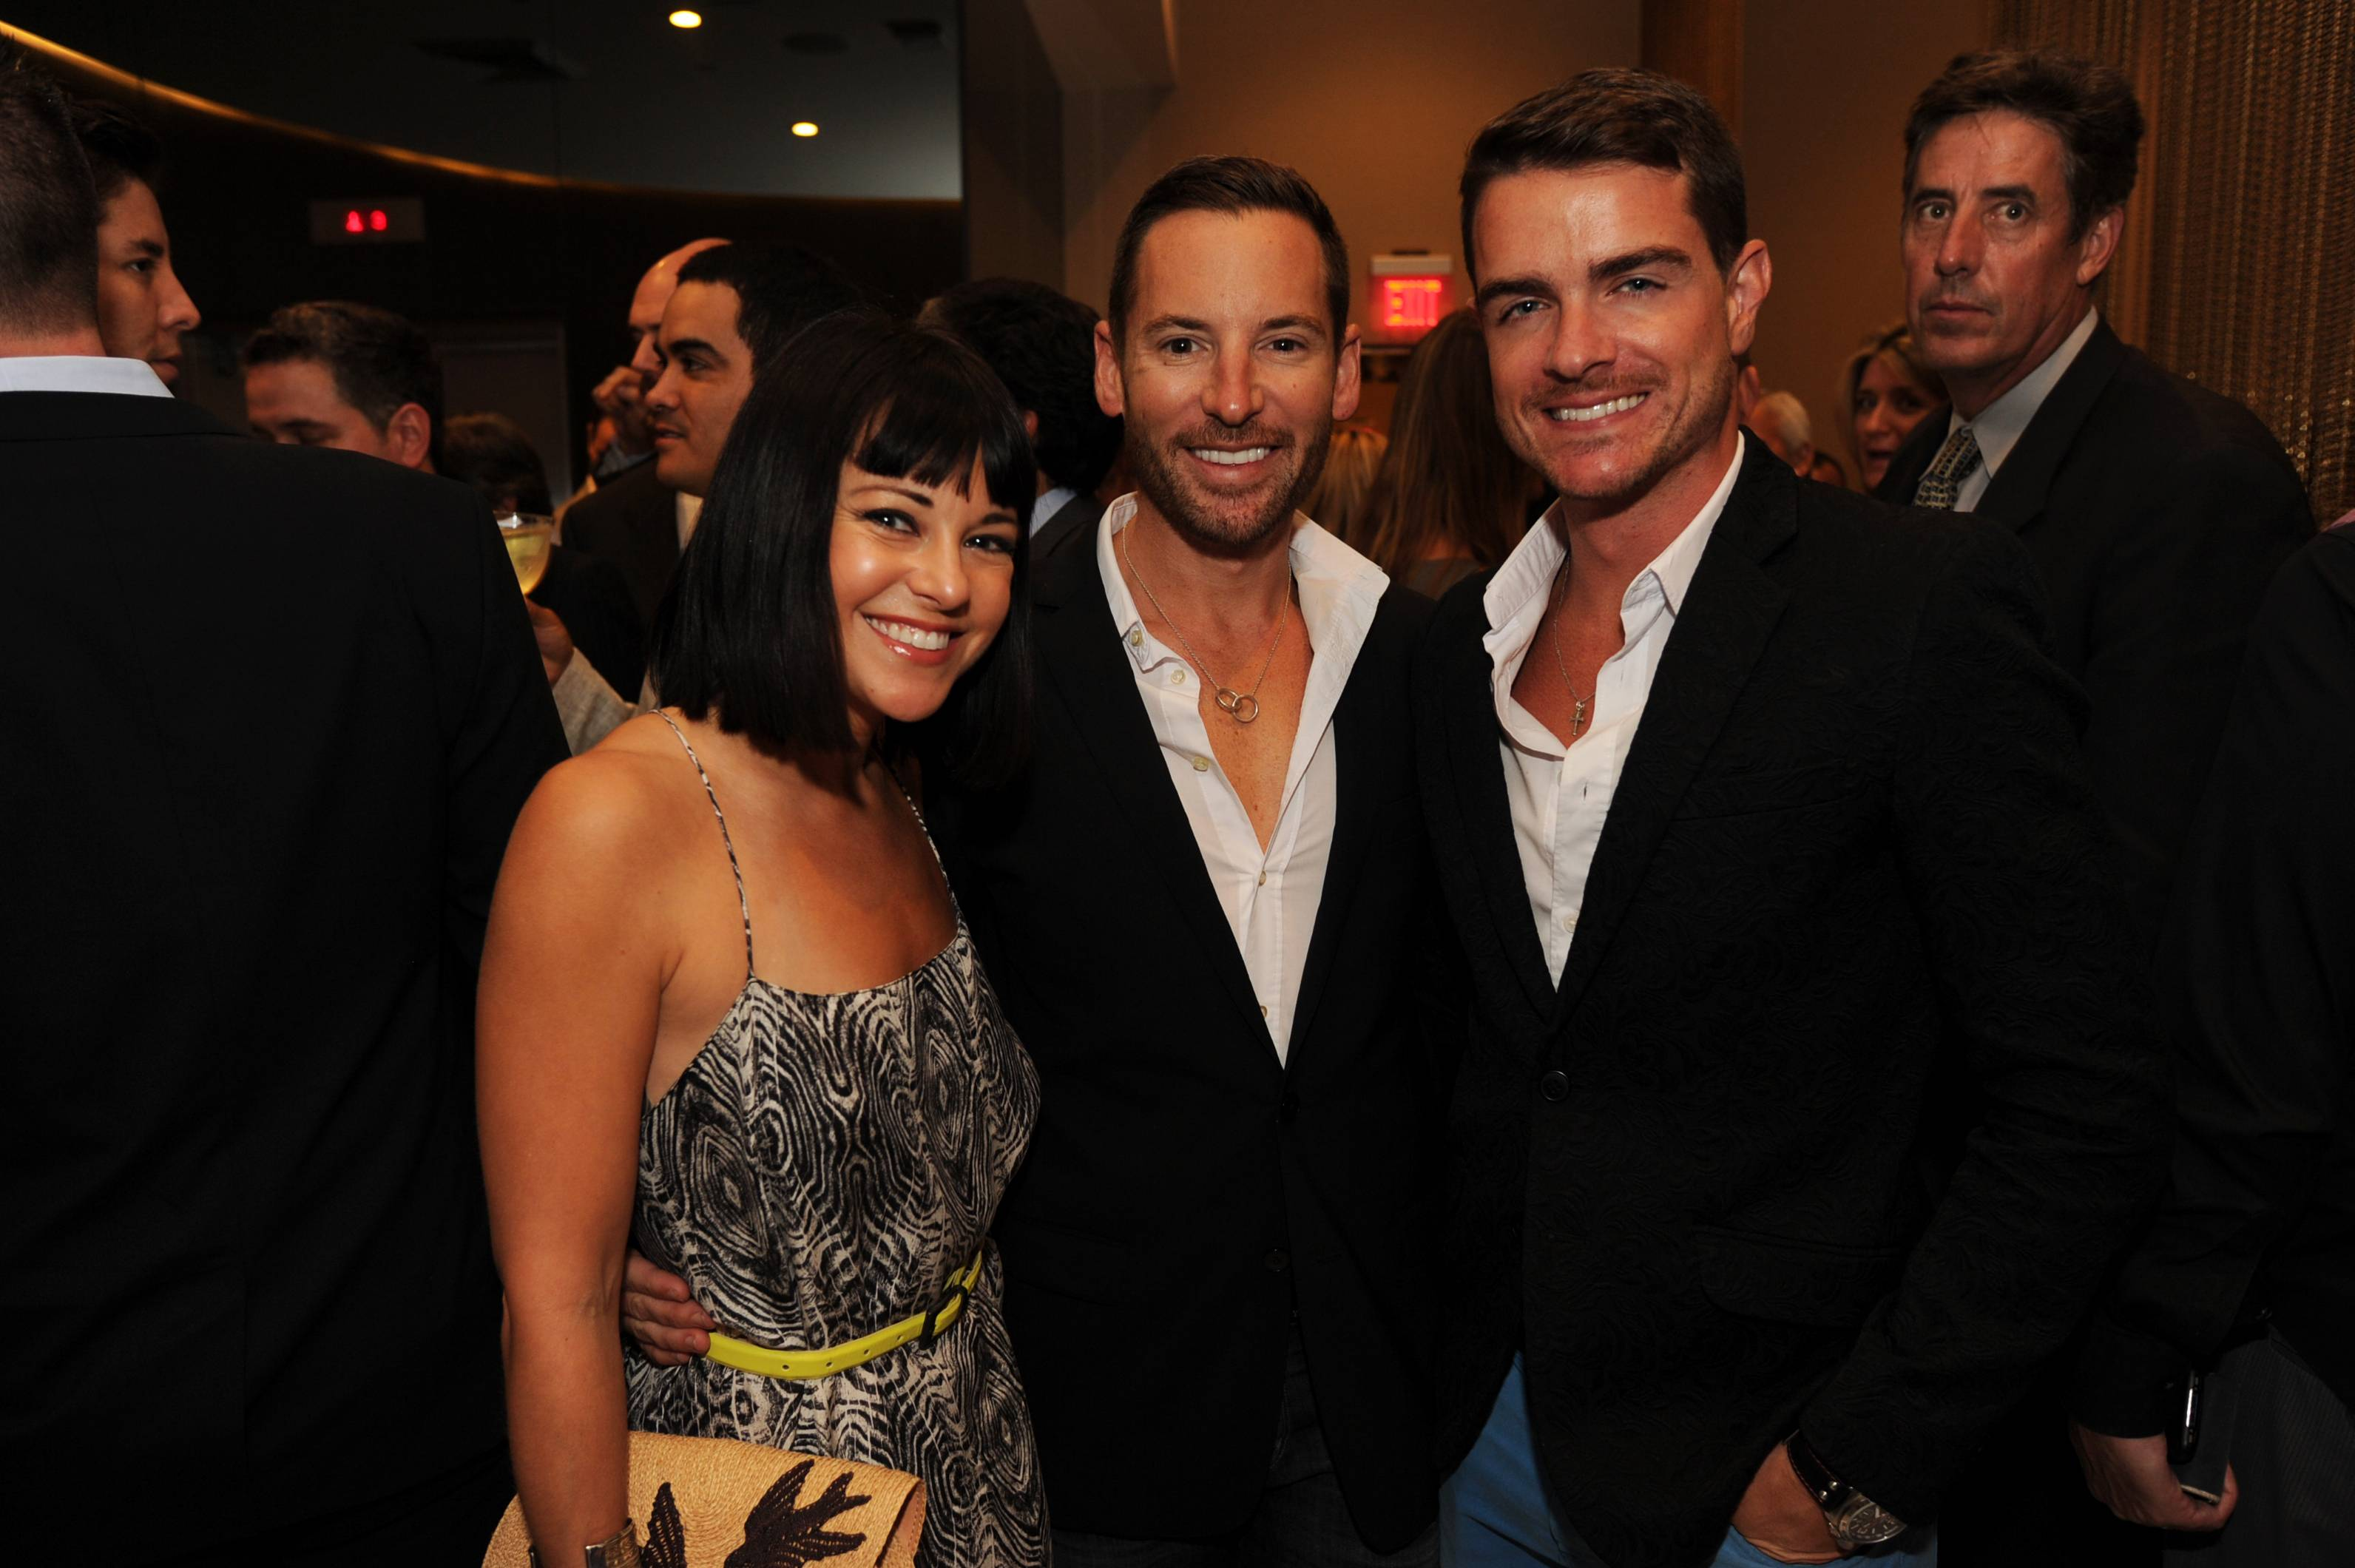 Anne Owen, Edward de Valle and Mathew Parento at the Paramount Bay Grand Opening